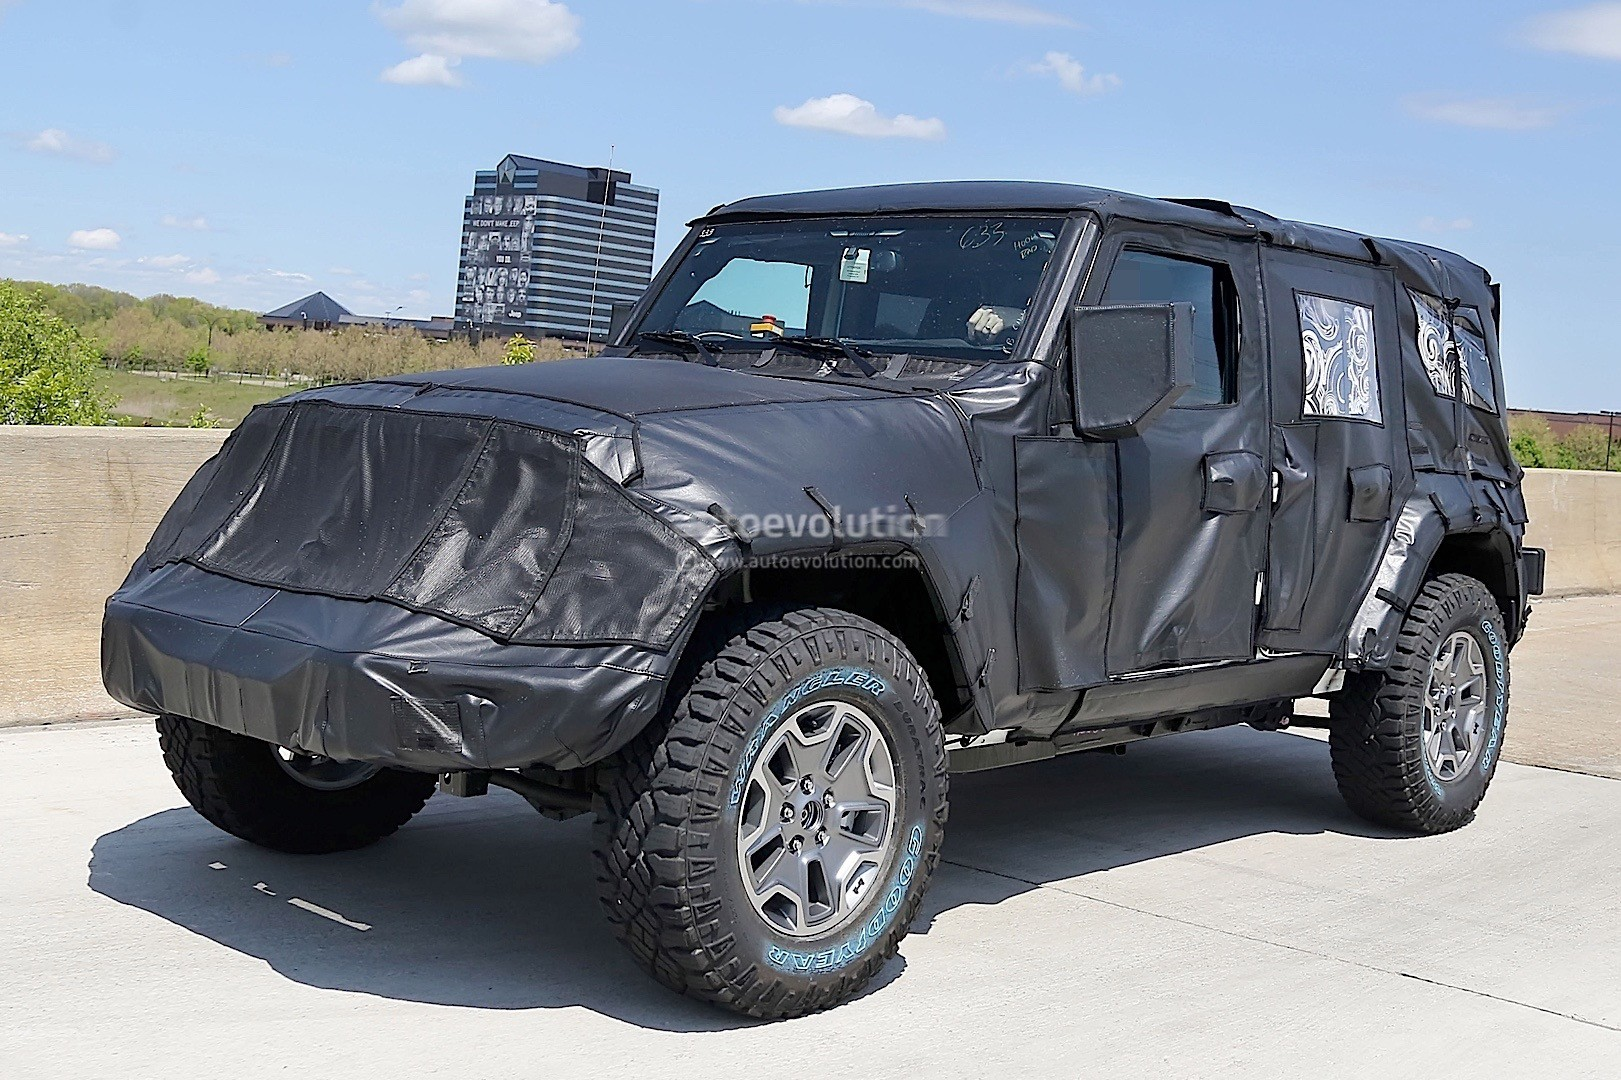 2018 Jeep Wrangler Jl Spied Shows New Hardware Autoevolution Tj Clock Spring Wiring Diagram